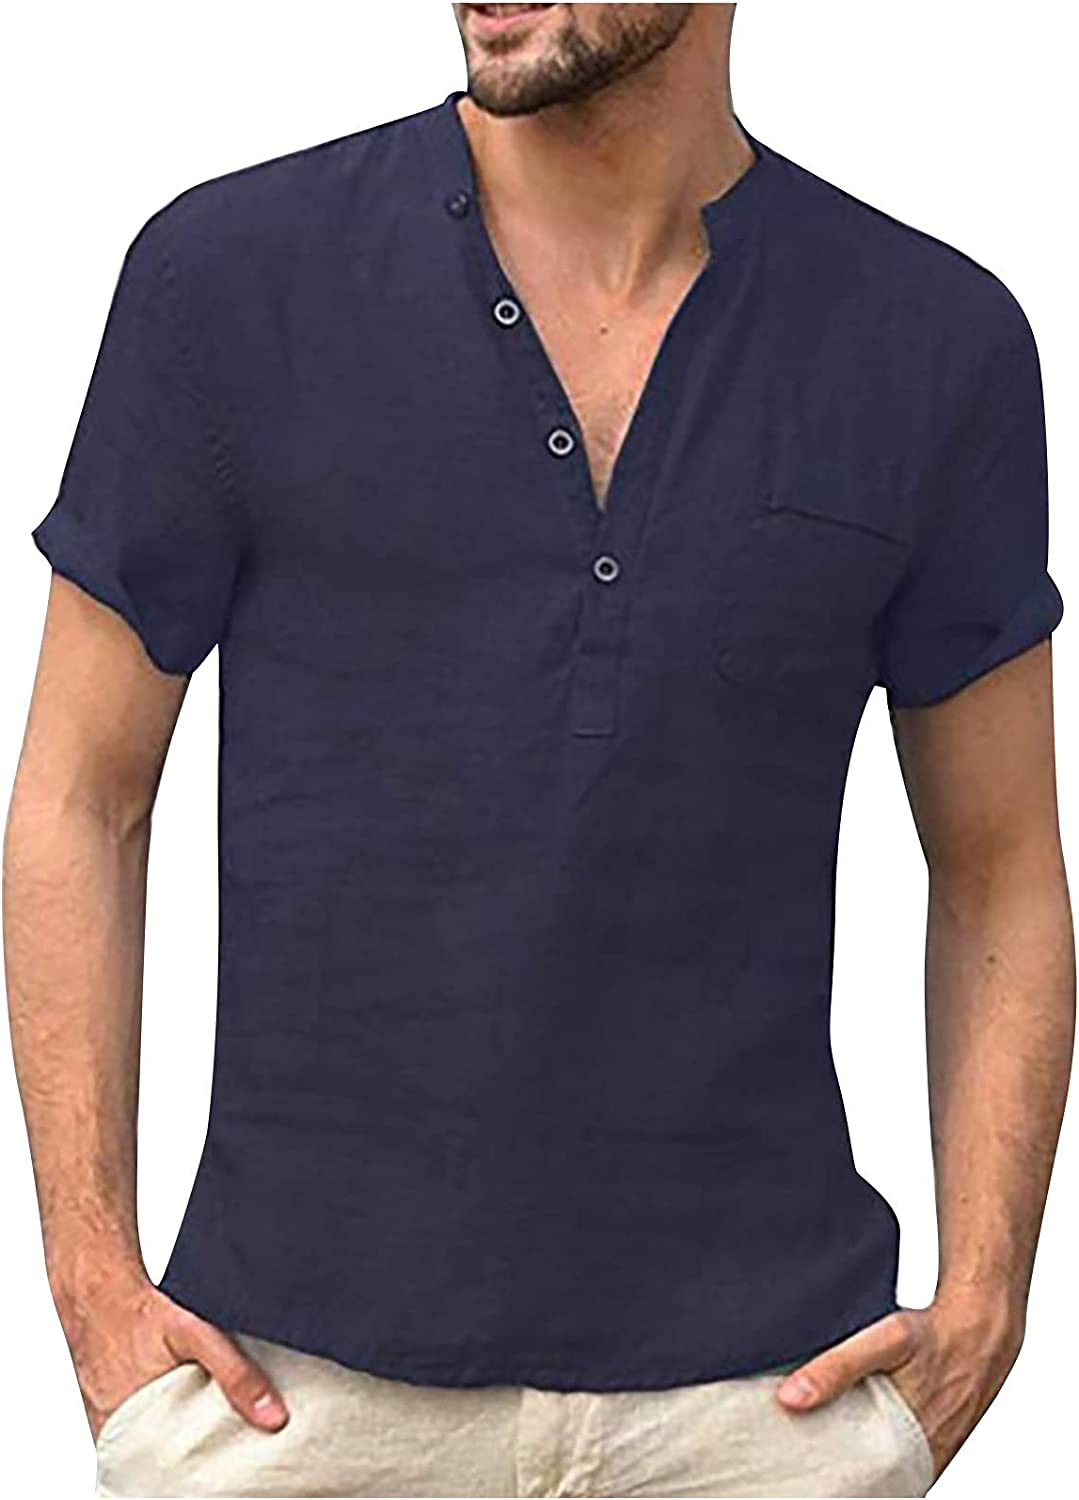 Ganfancp Casual Tee Shirt for Men,Vintage Solid Cotton Linen Short Sleeve Men Top Button Down V-Neck T-Shirt with Pocket